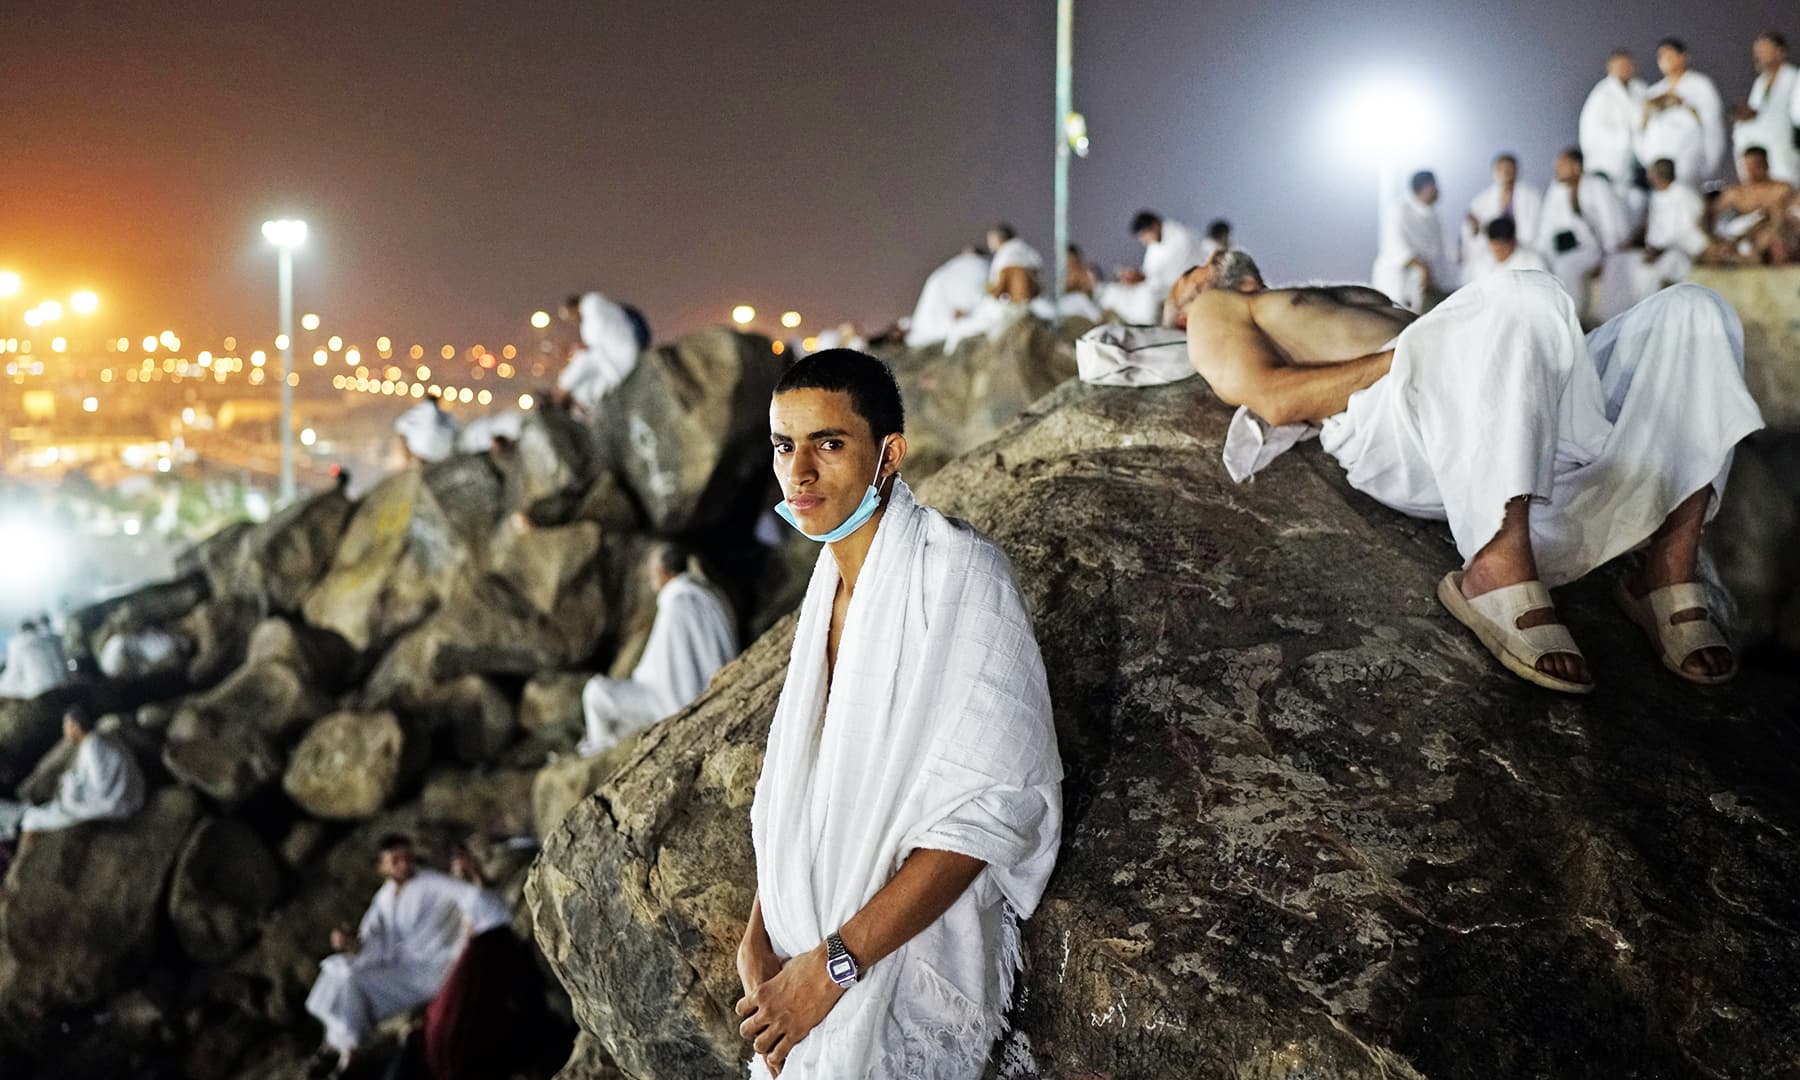 Pilgrims gather on Mount Mercy on the plains of Arafat. — Reuters